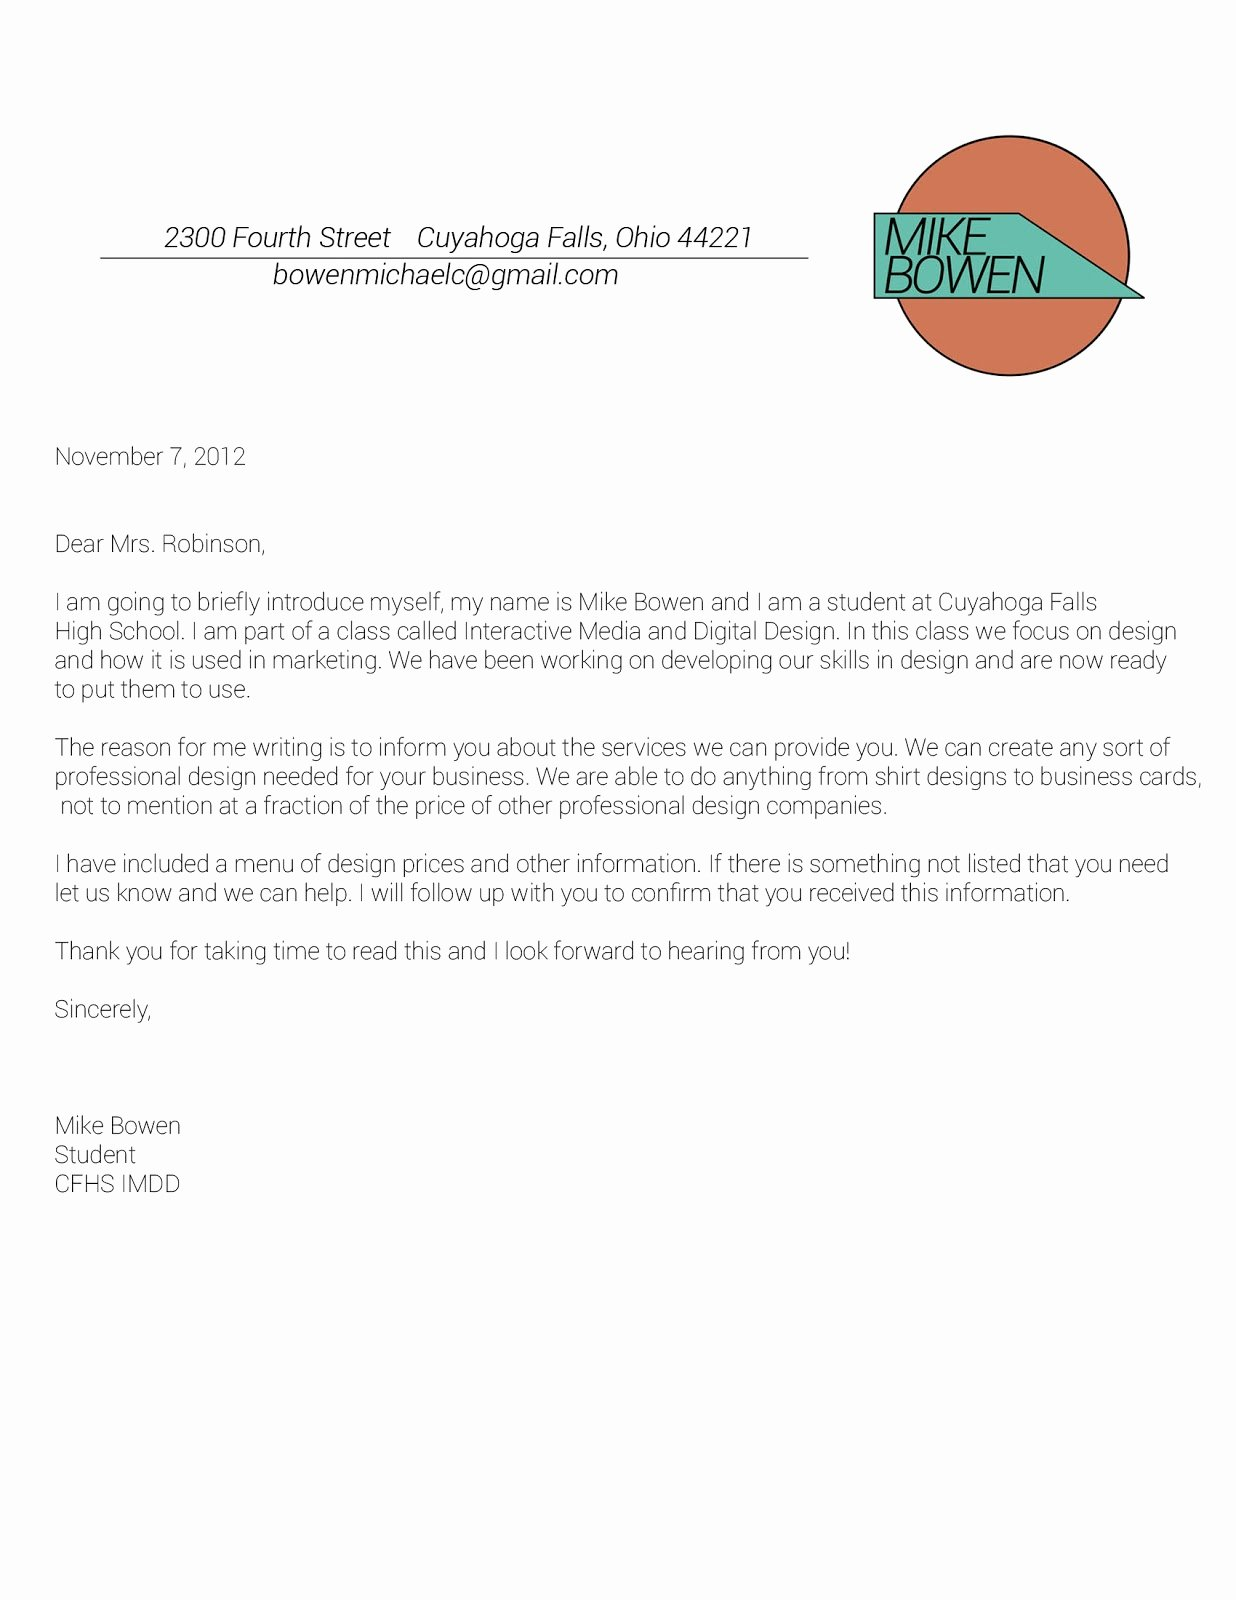 Business Letter Template with Logo Fresh Grizz Marketing